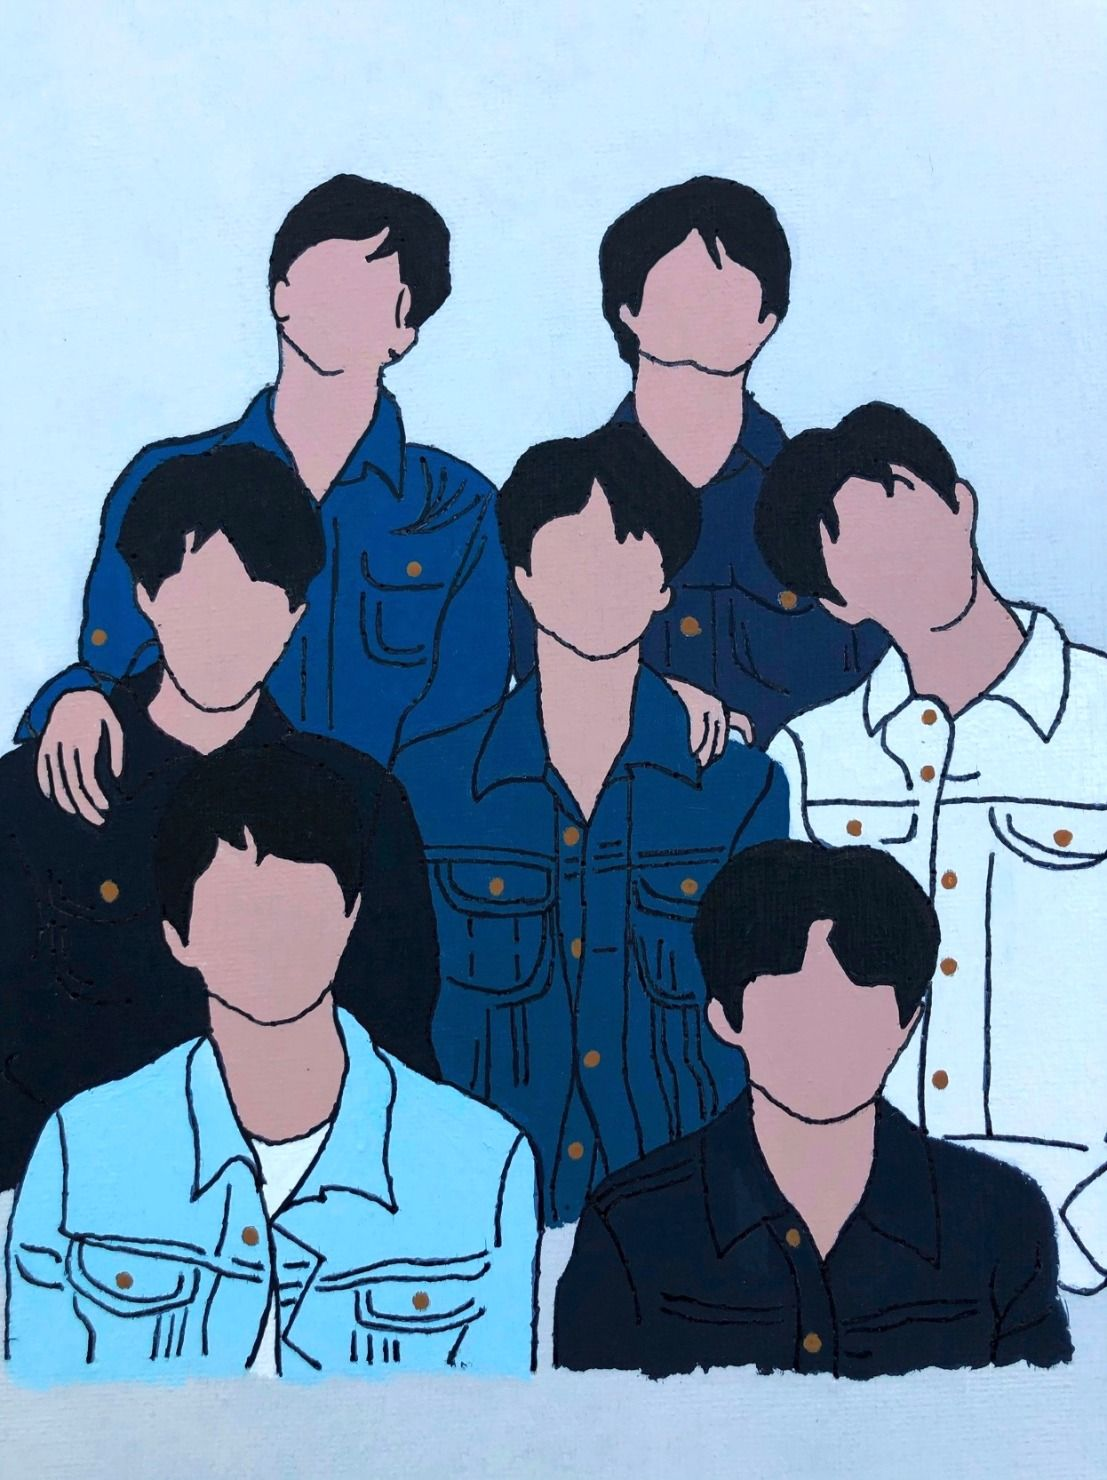 Bts jean jacket silhouette painting in 2020 silhouette